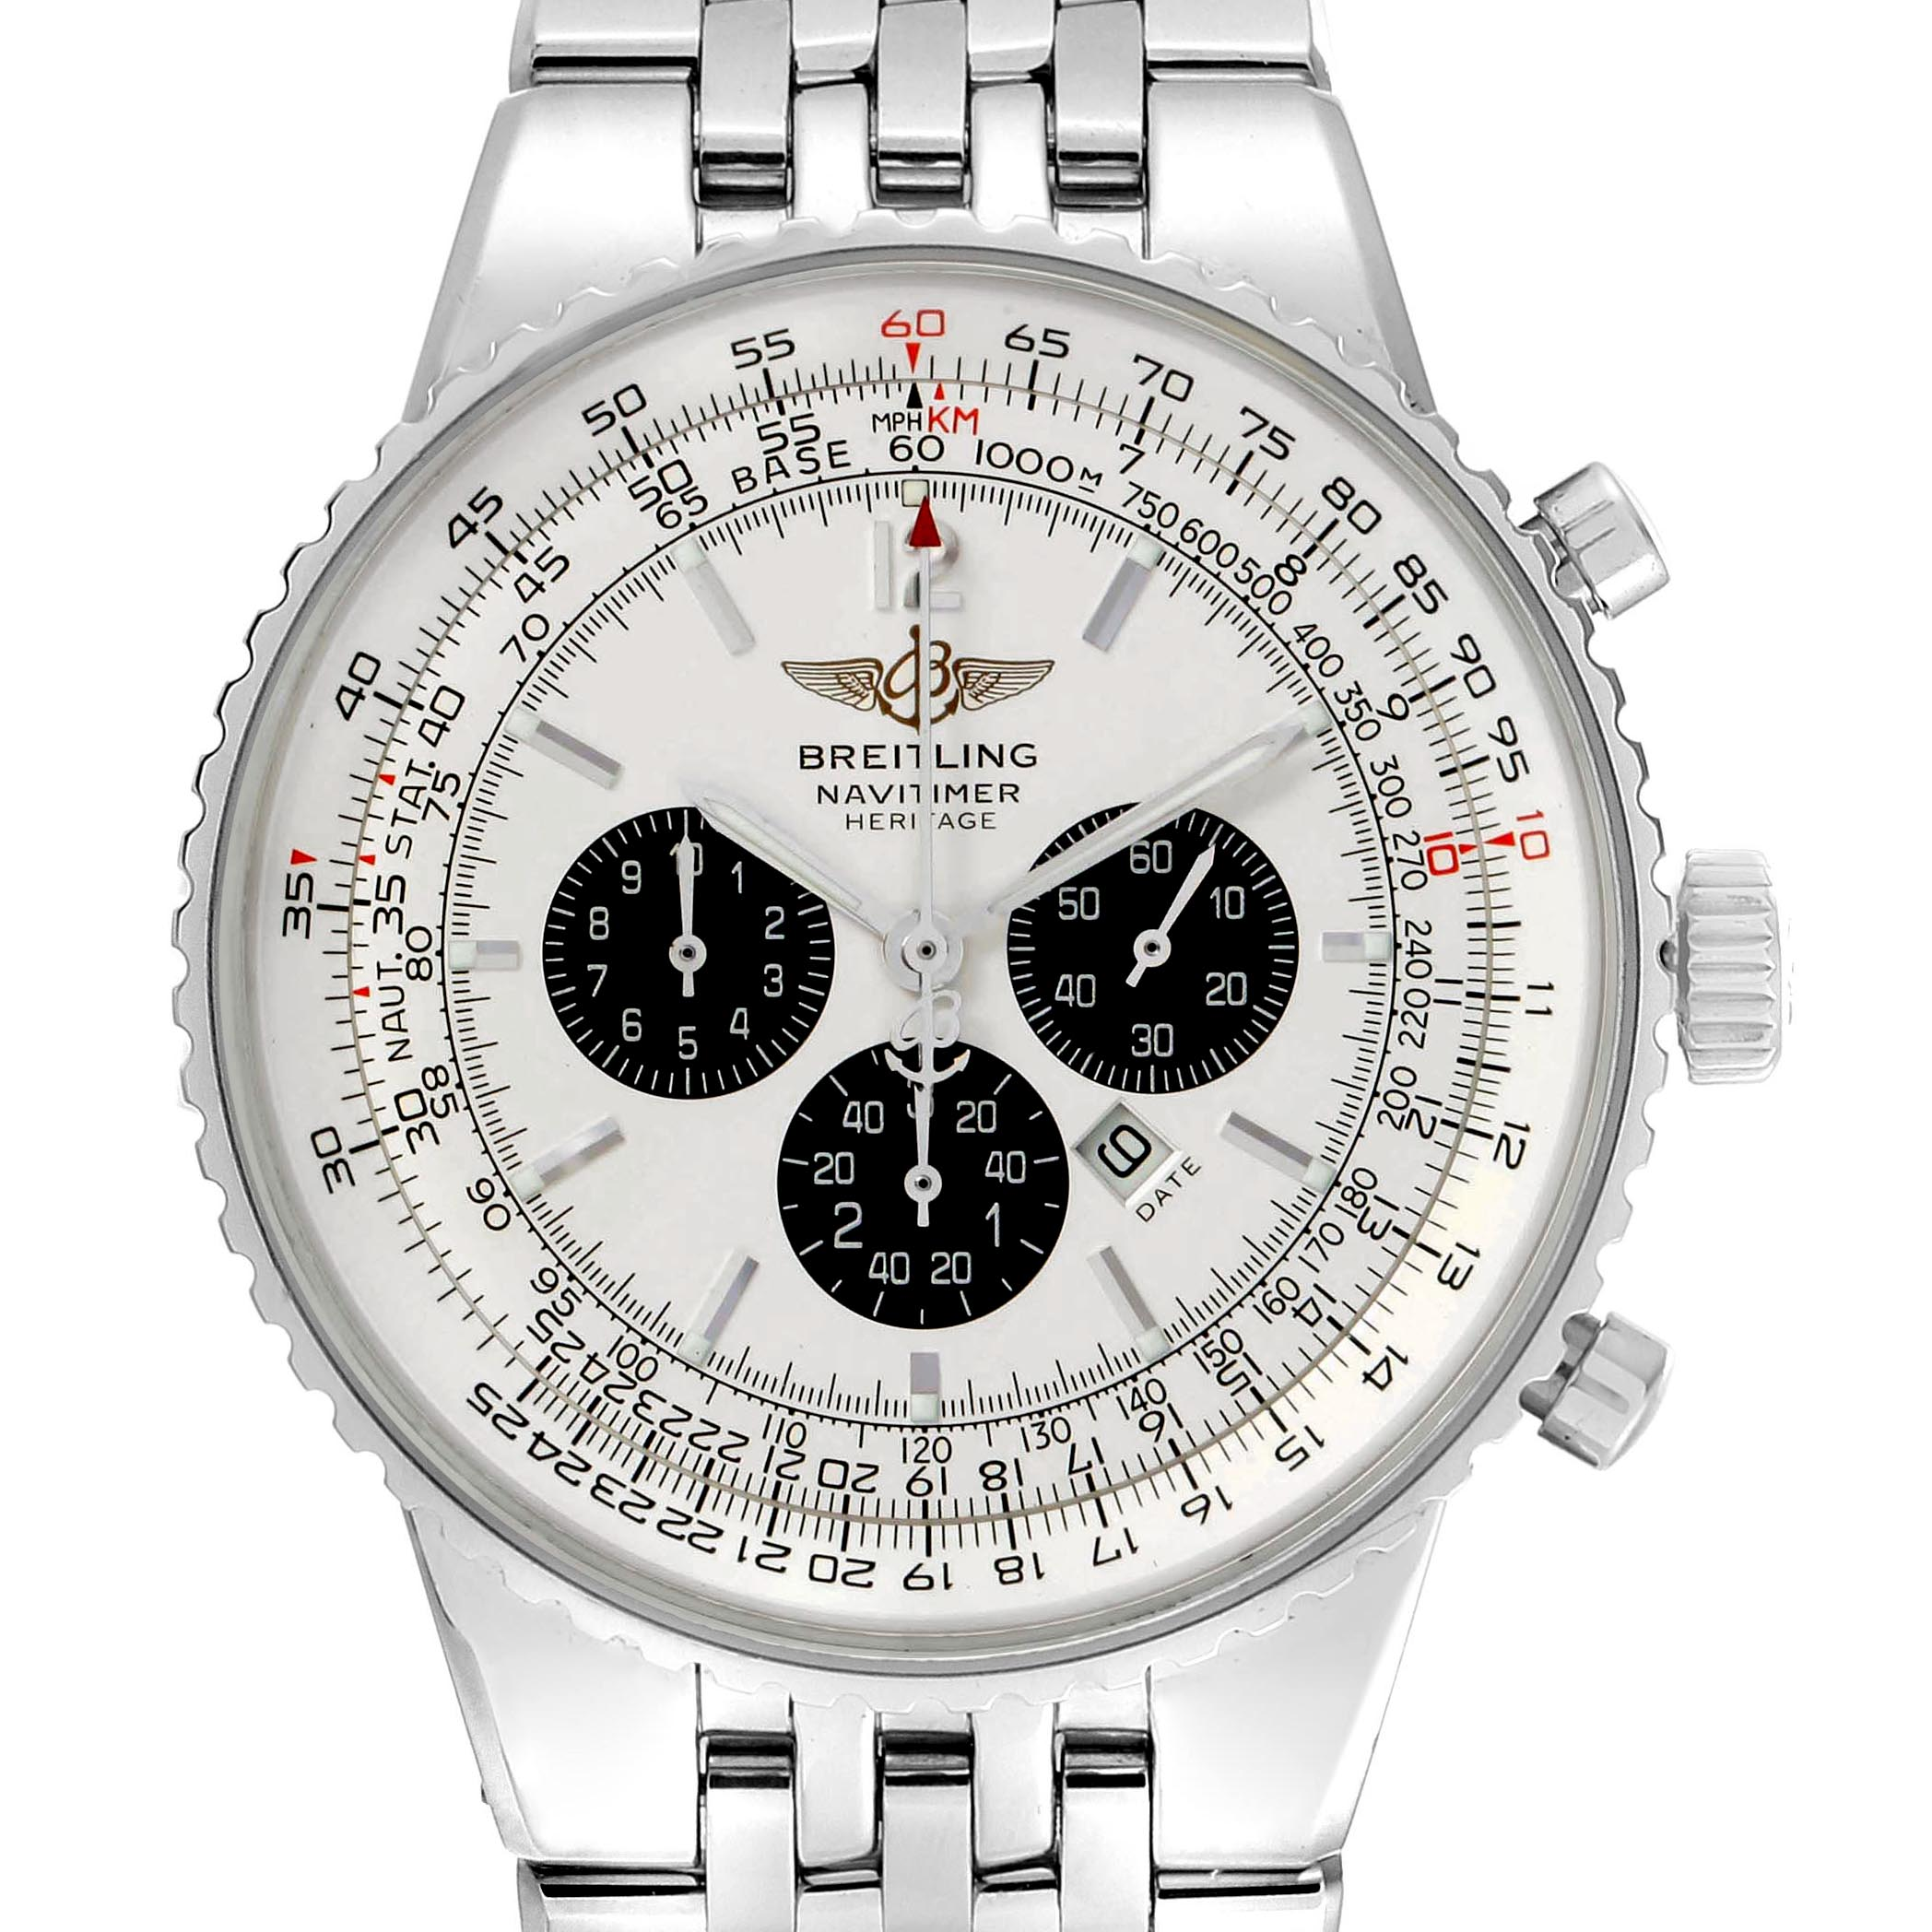 Breitling Navitimer Heritage Silver Dial Automatic Mens Watch A35340